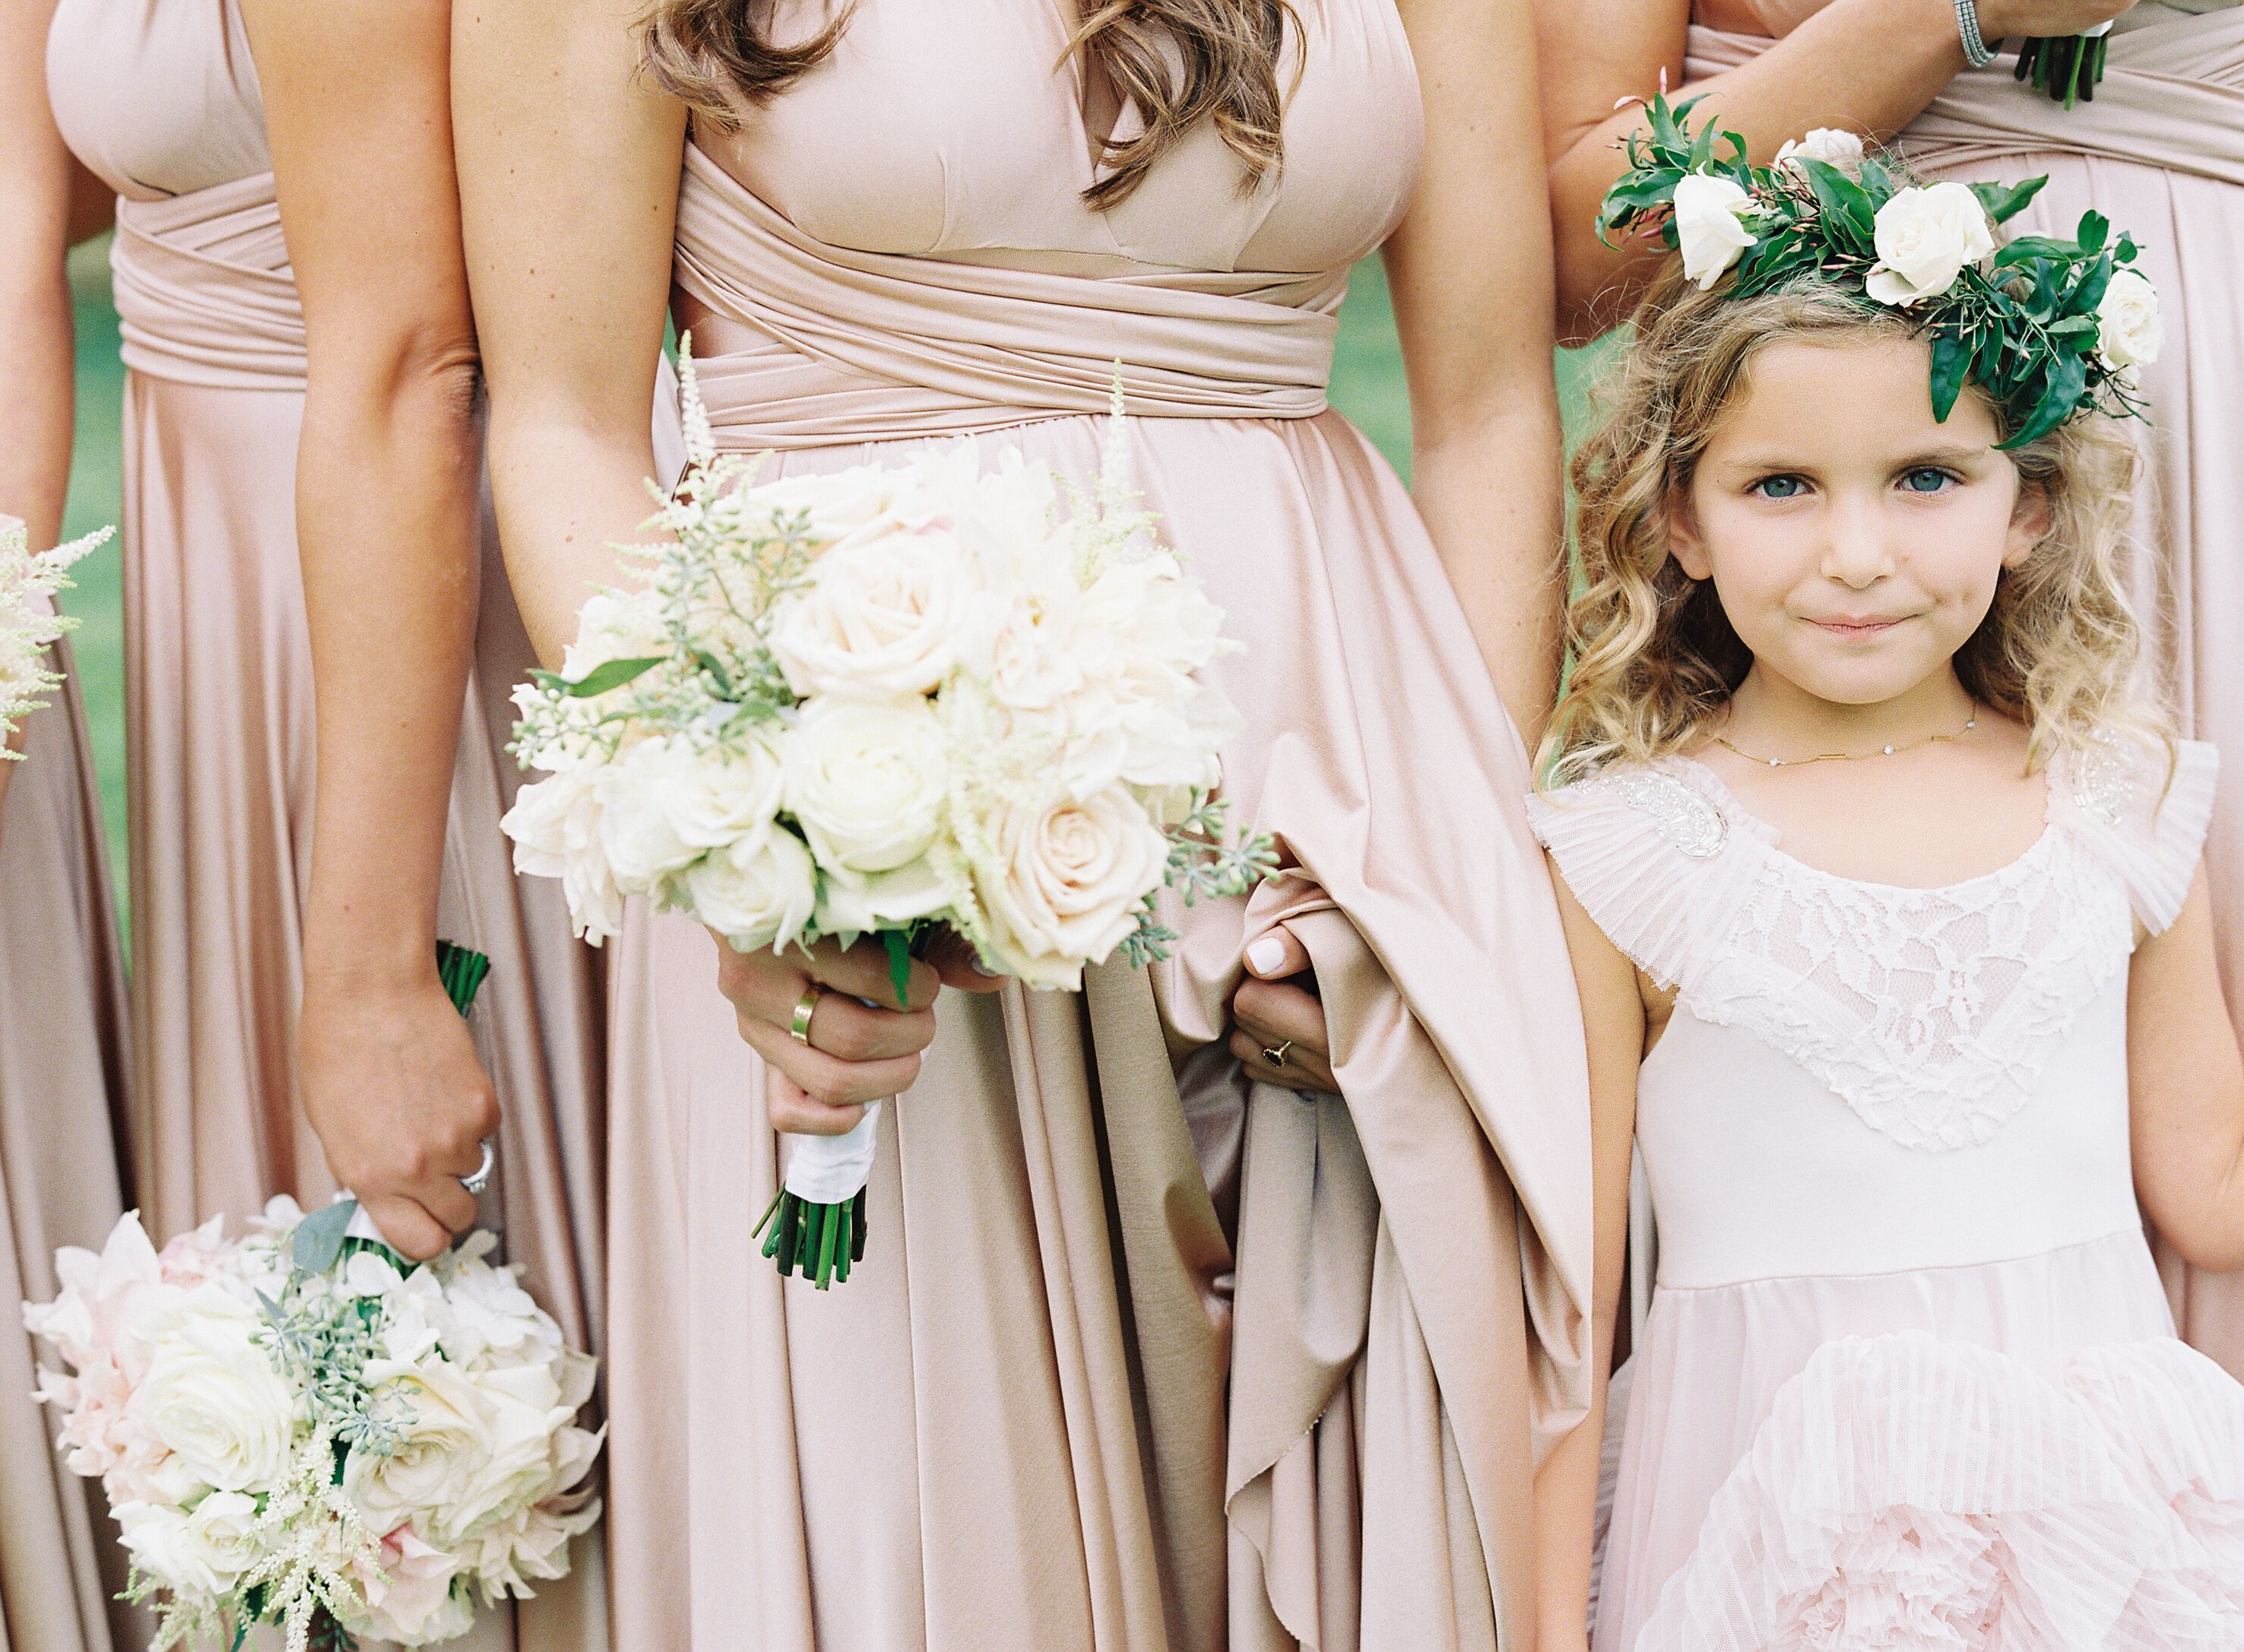 Rosewood rose gold twobirds bridesmaid dresses a real wedding rosewood rose gold twobirds bridesmaid dresses a real wedding featuring our multi way ombrellifo Images